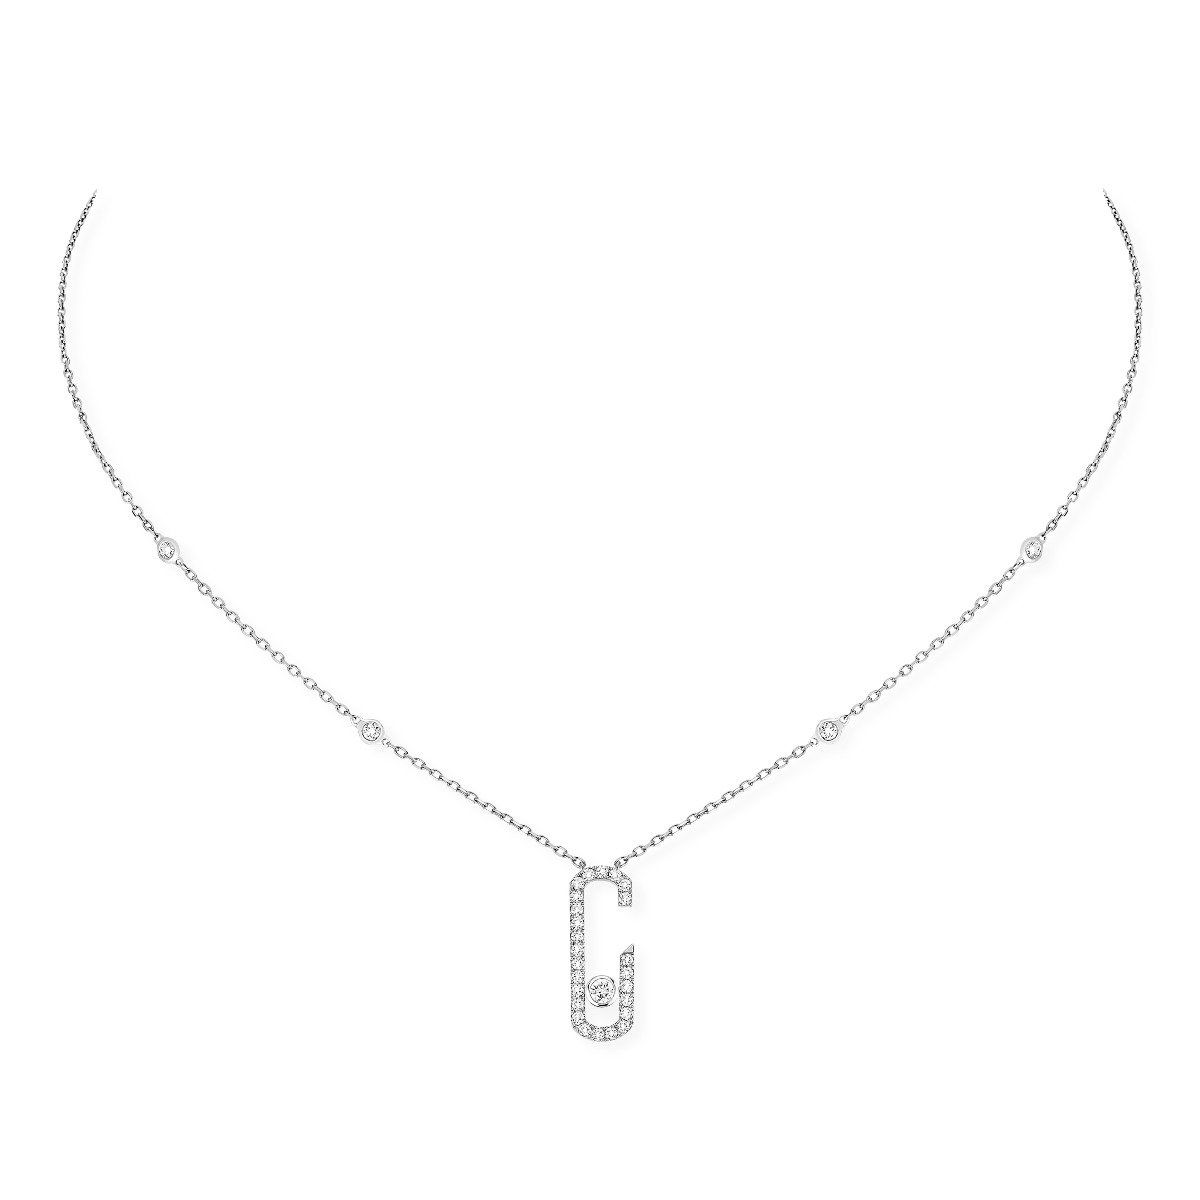 Move Addiction Pavé Necklace - White Gold